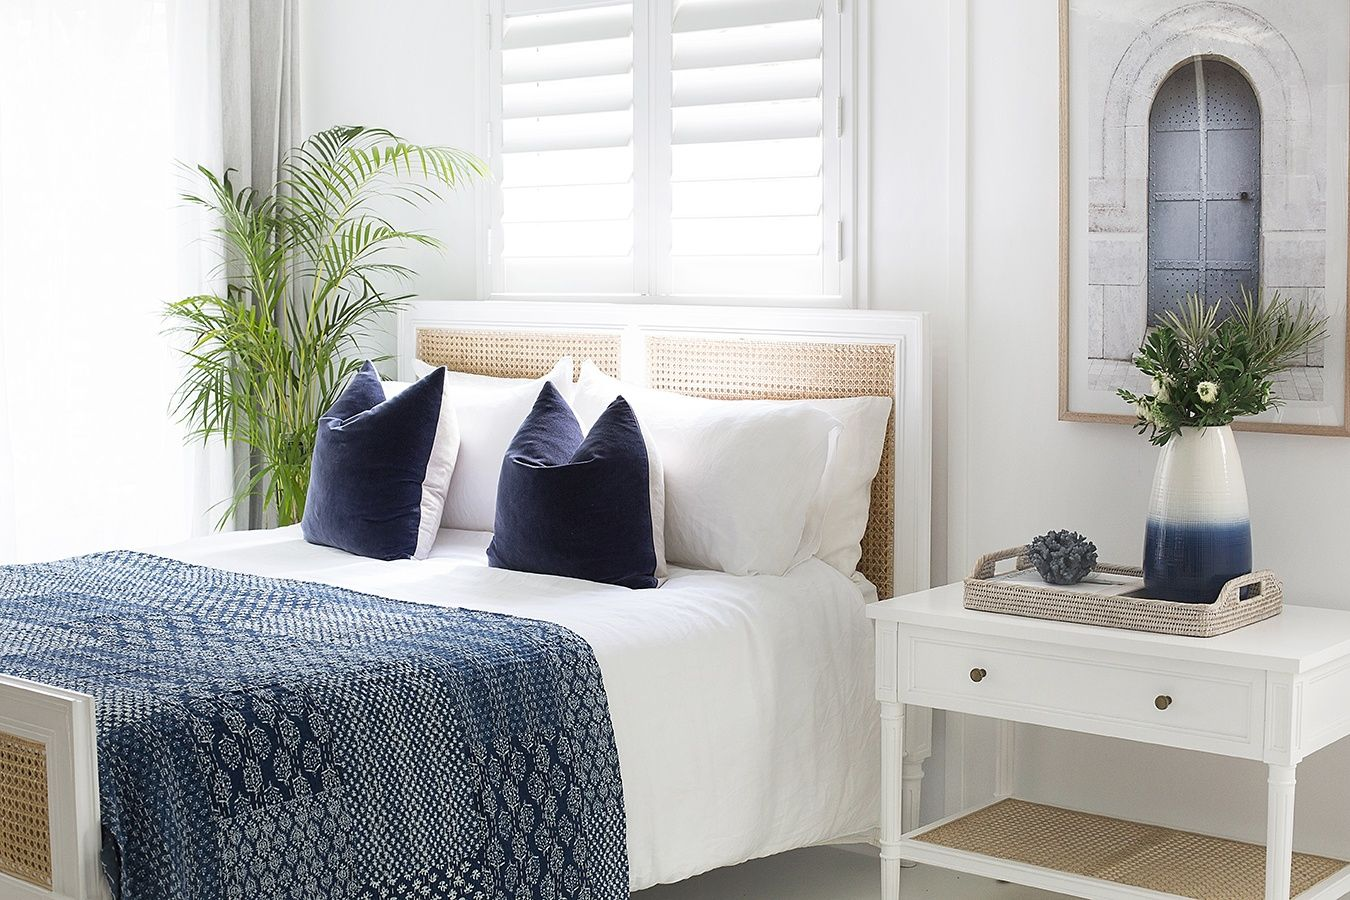 How to introduce Rattan into your decorating schemes